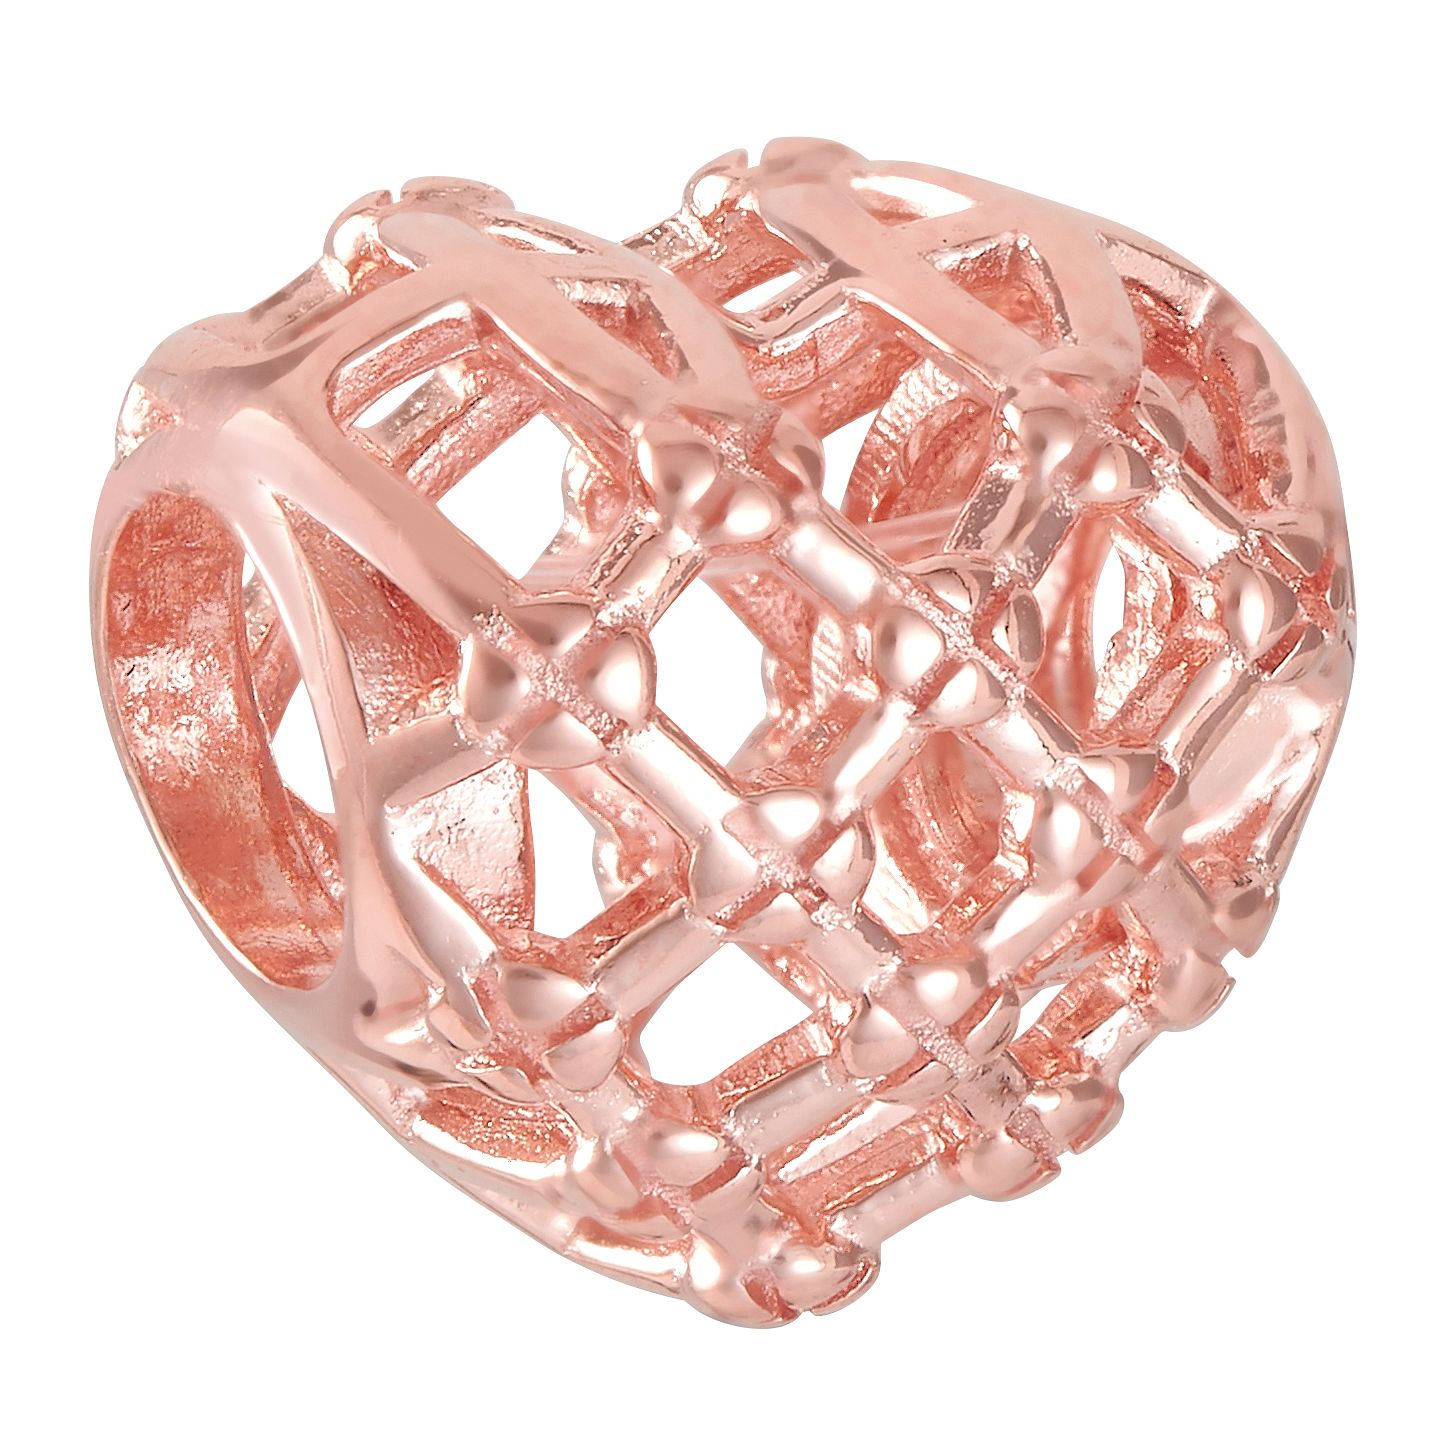 Chamilia Woven Heart Blush Charm - Product number 9426515